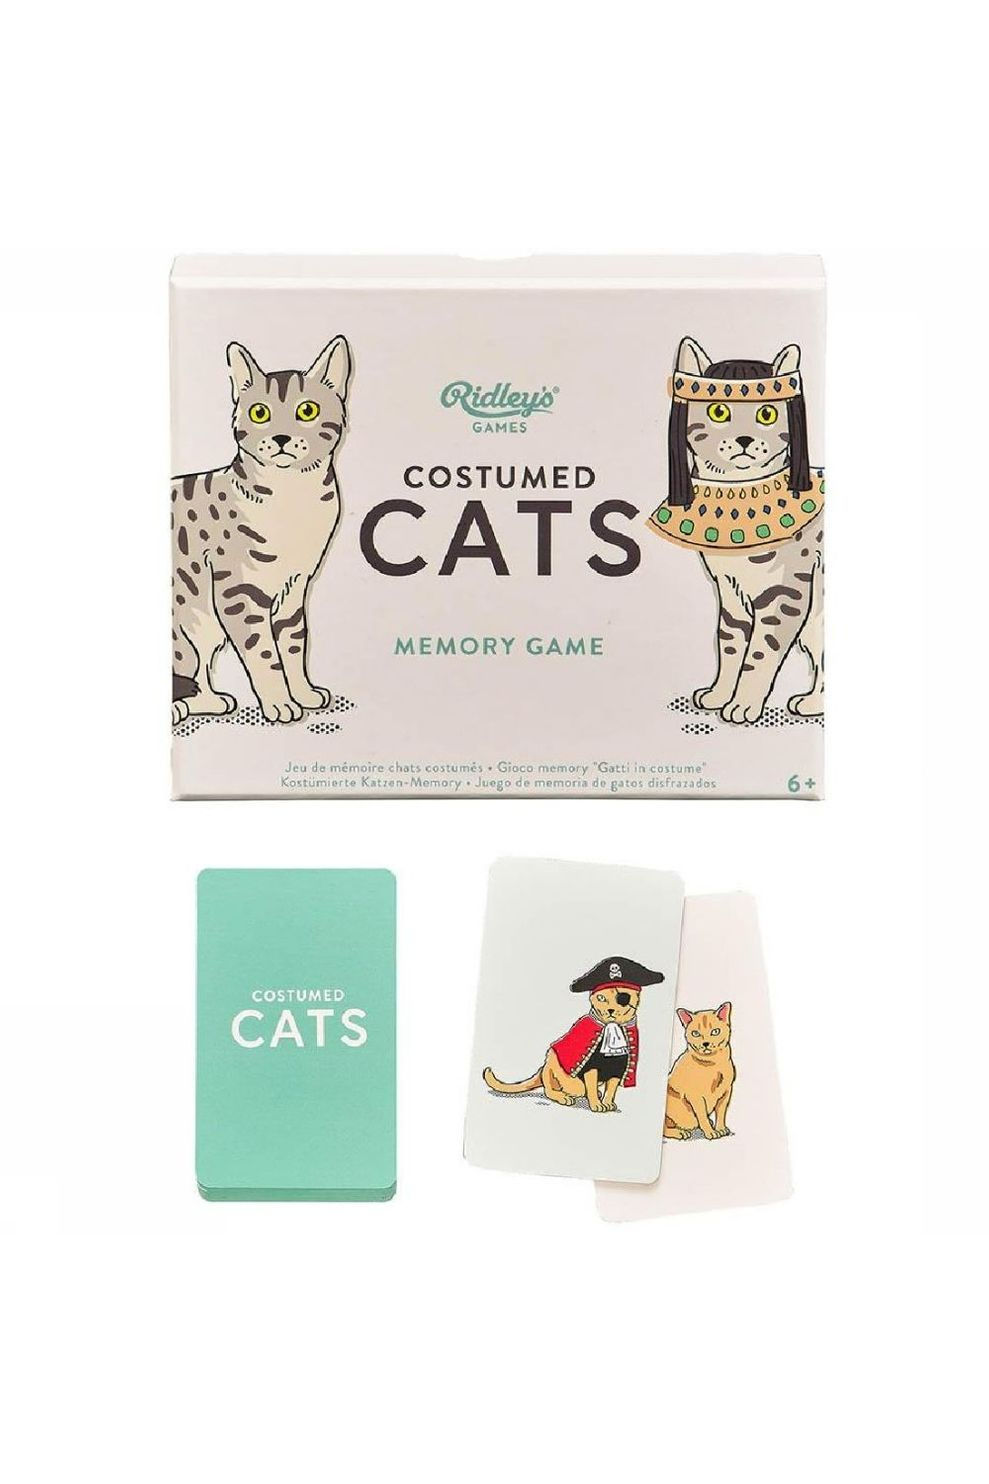 Ridley's Spel Costume Cats Memory Game - - Transparant